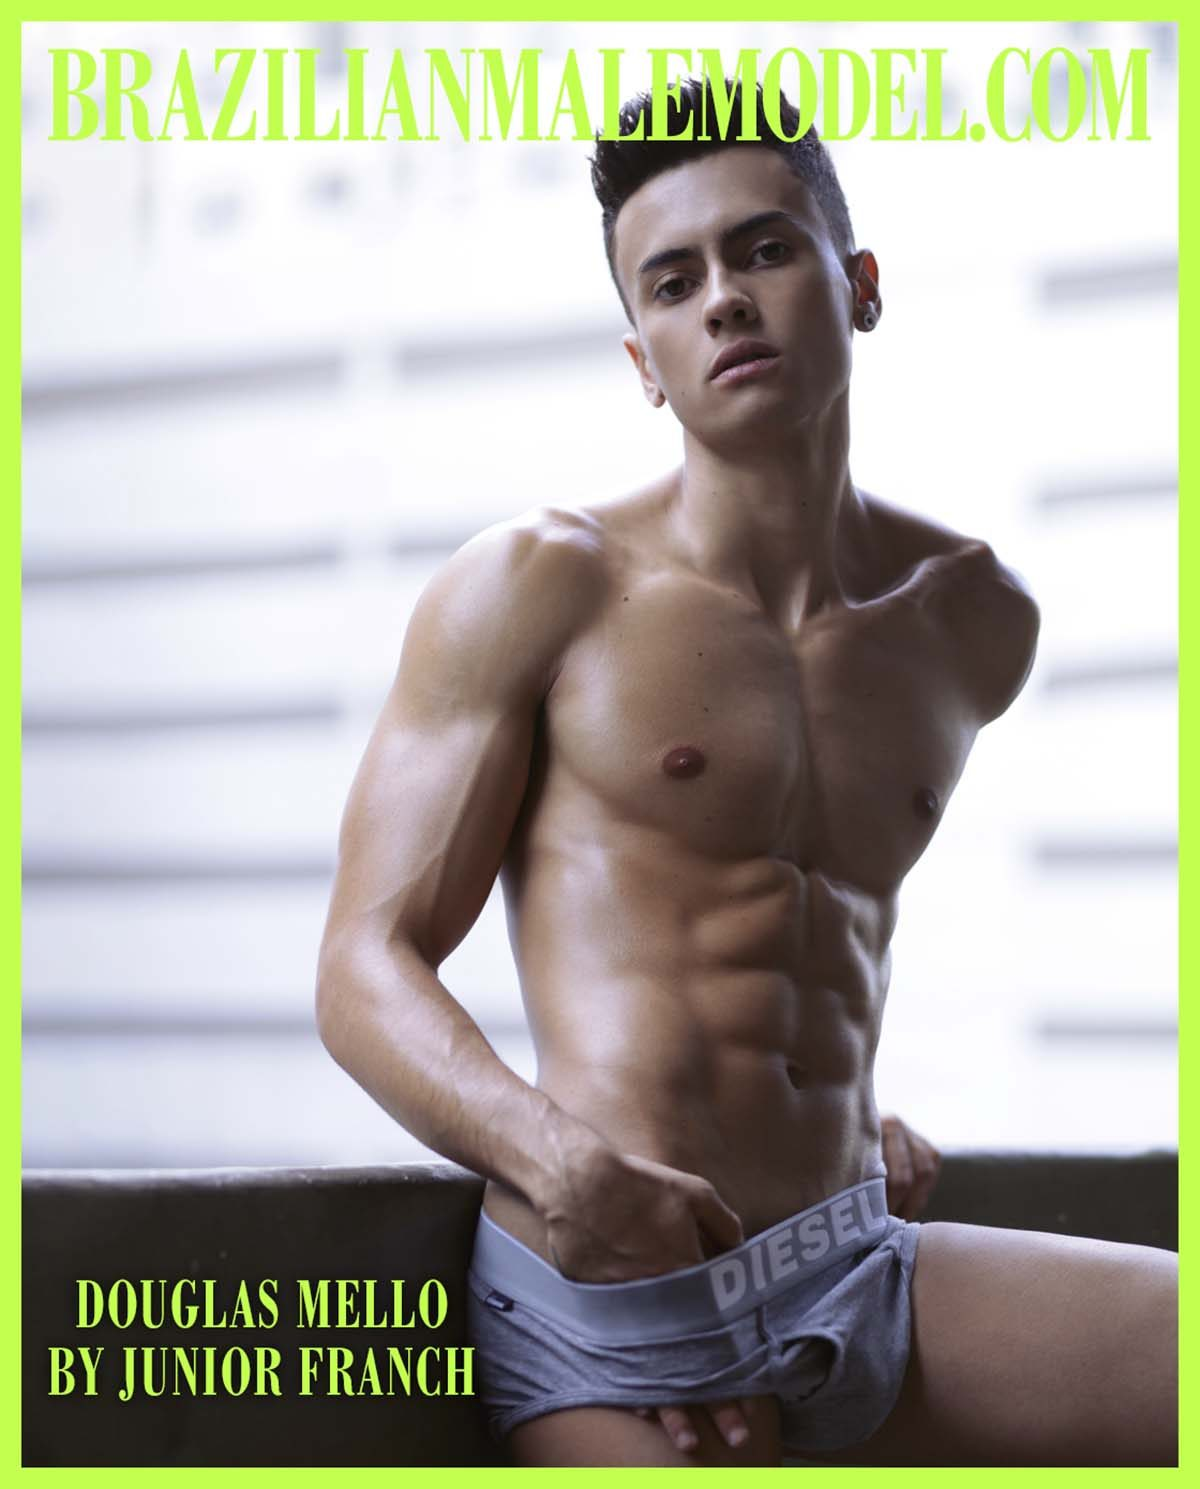 Douglas Mello by Junior Franch